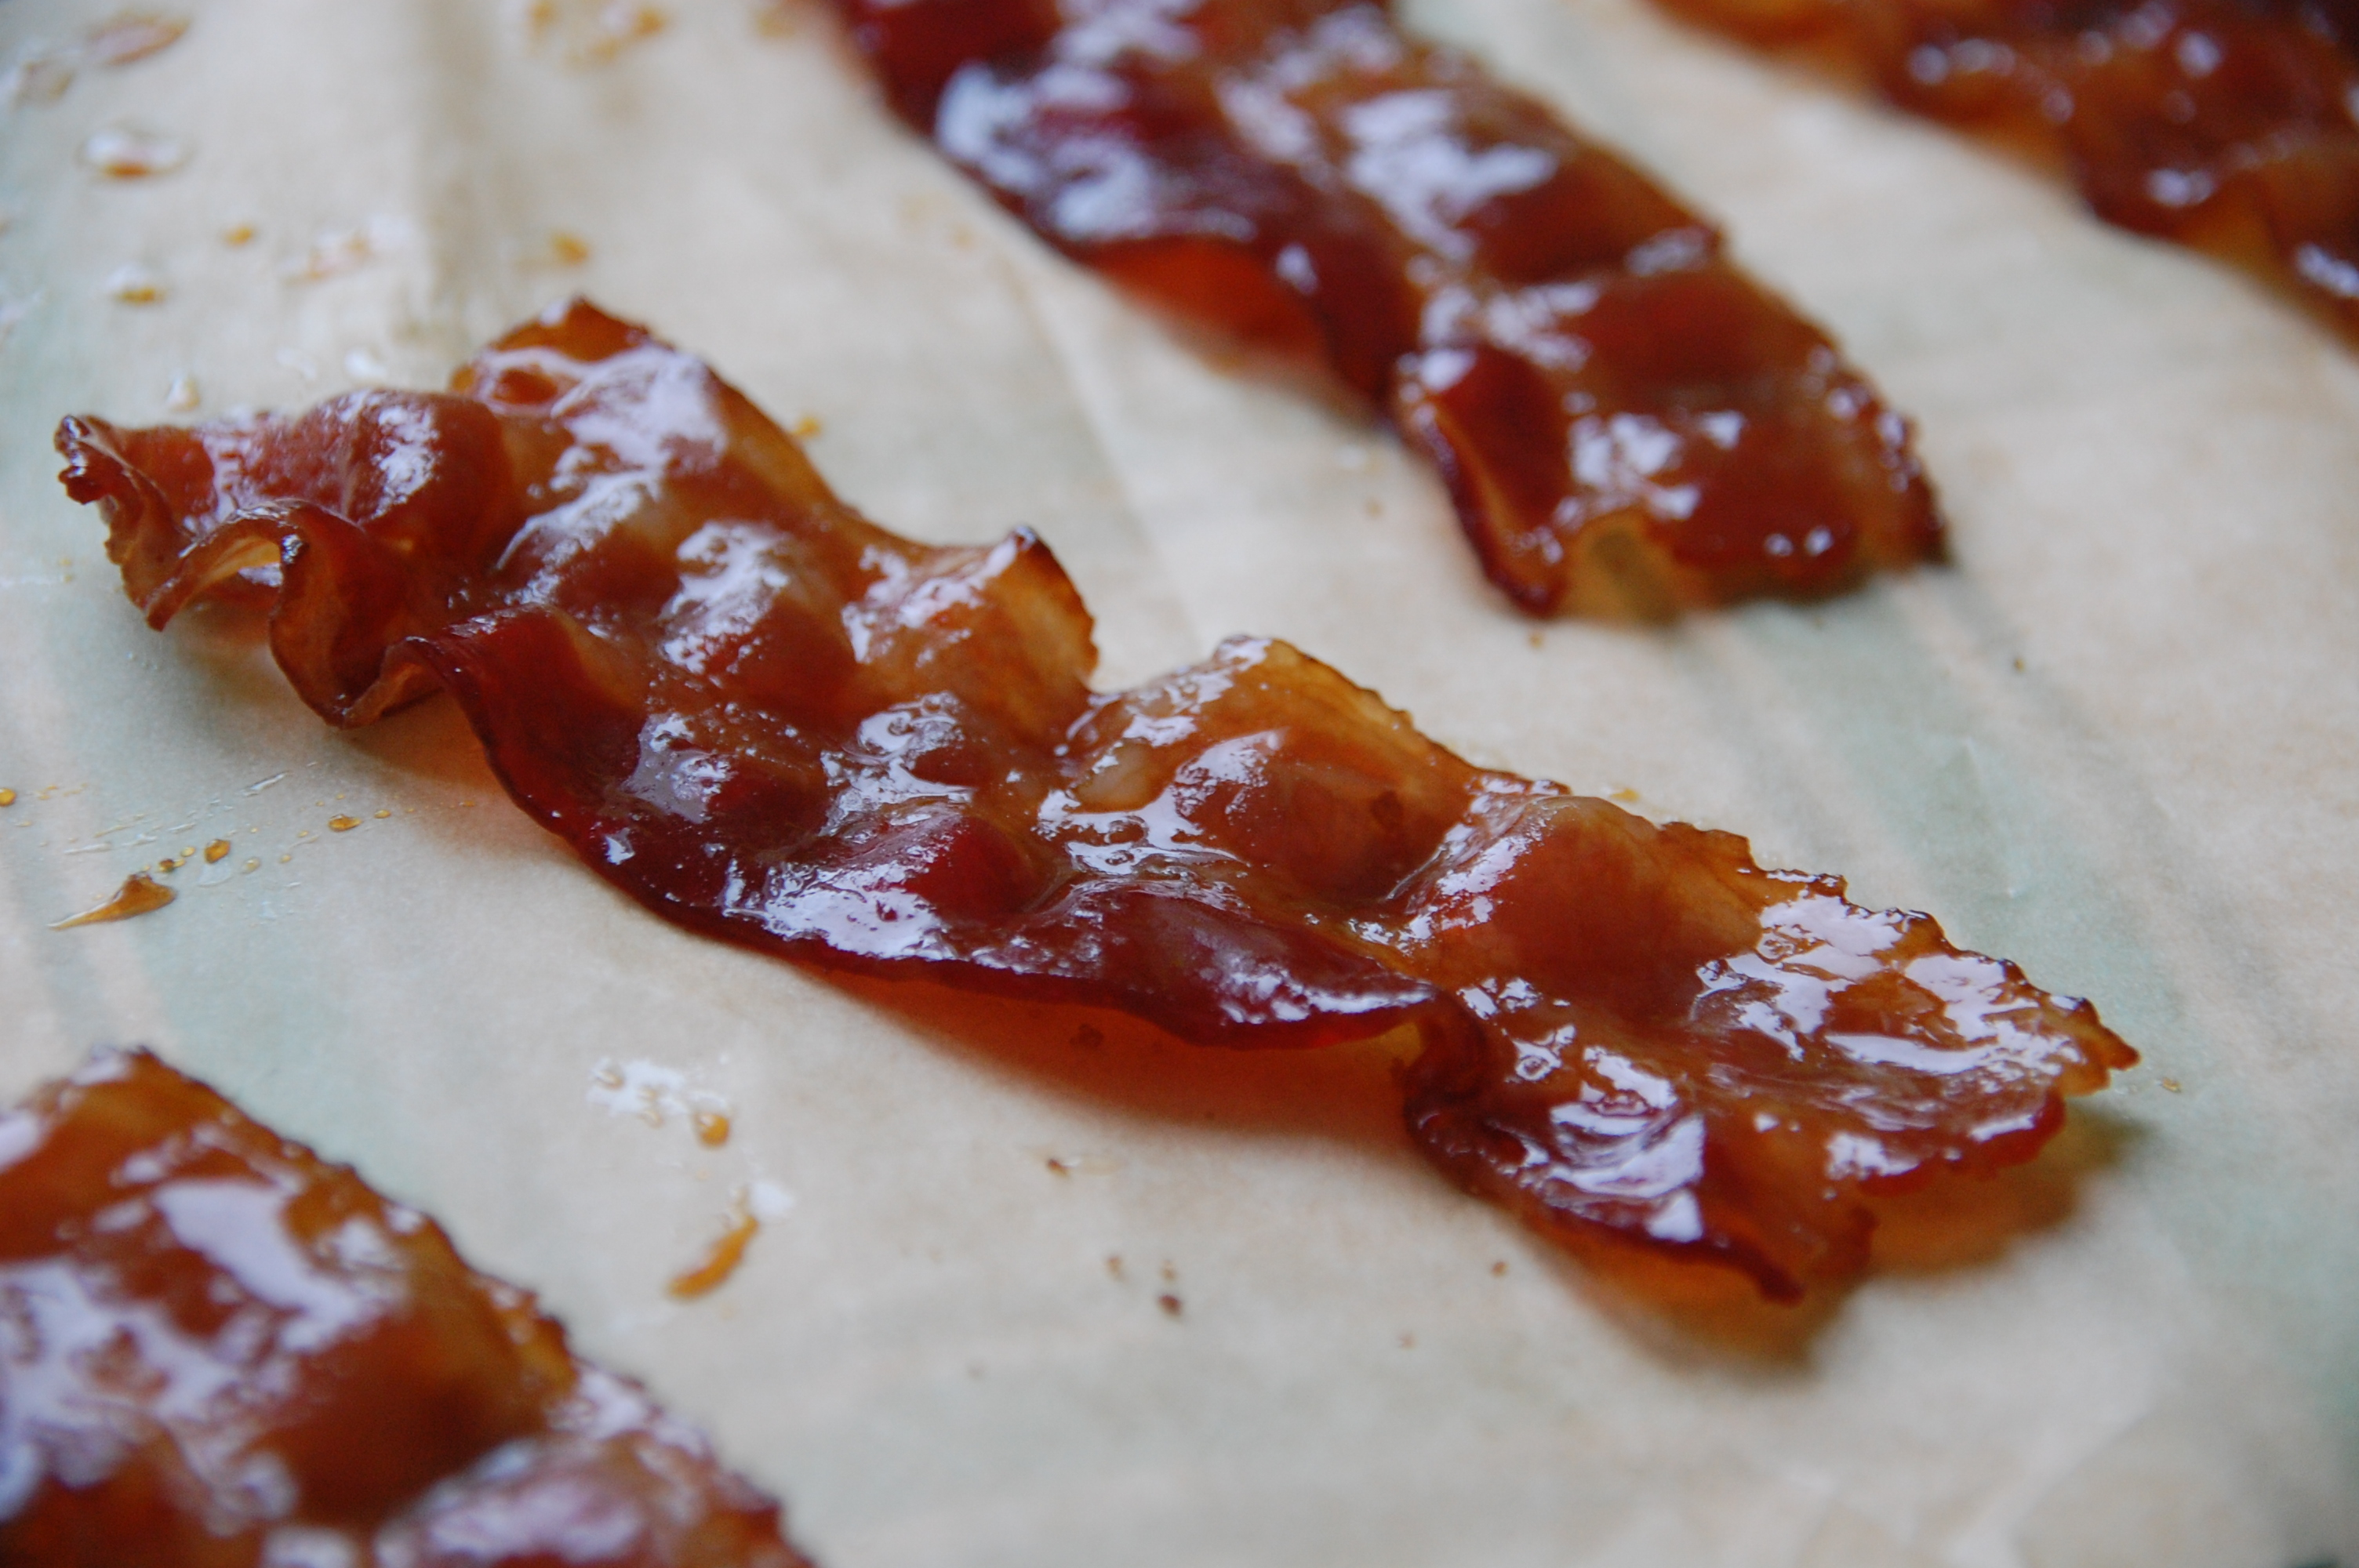 Candy Bacon (Kanderat bacon)